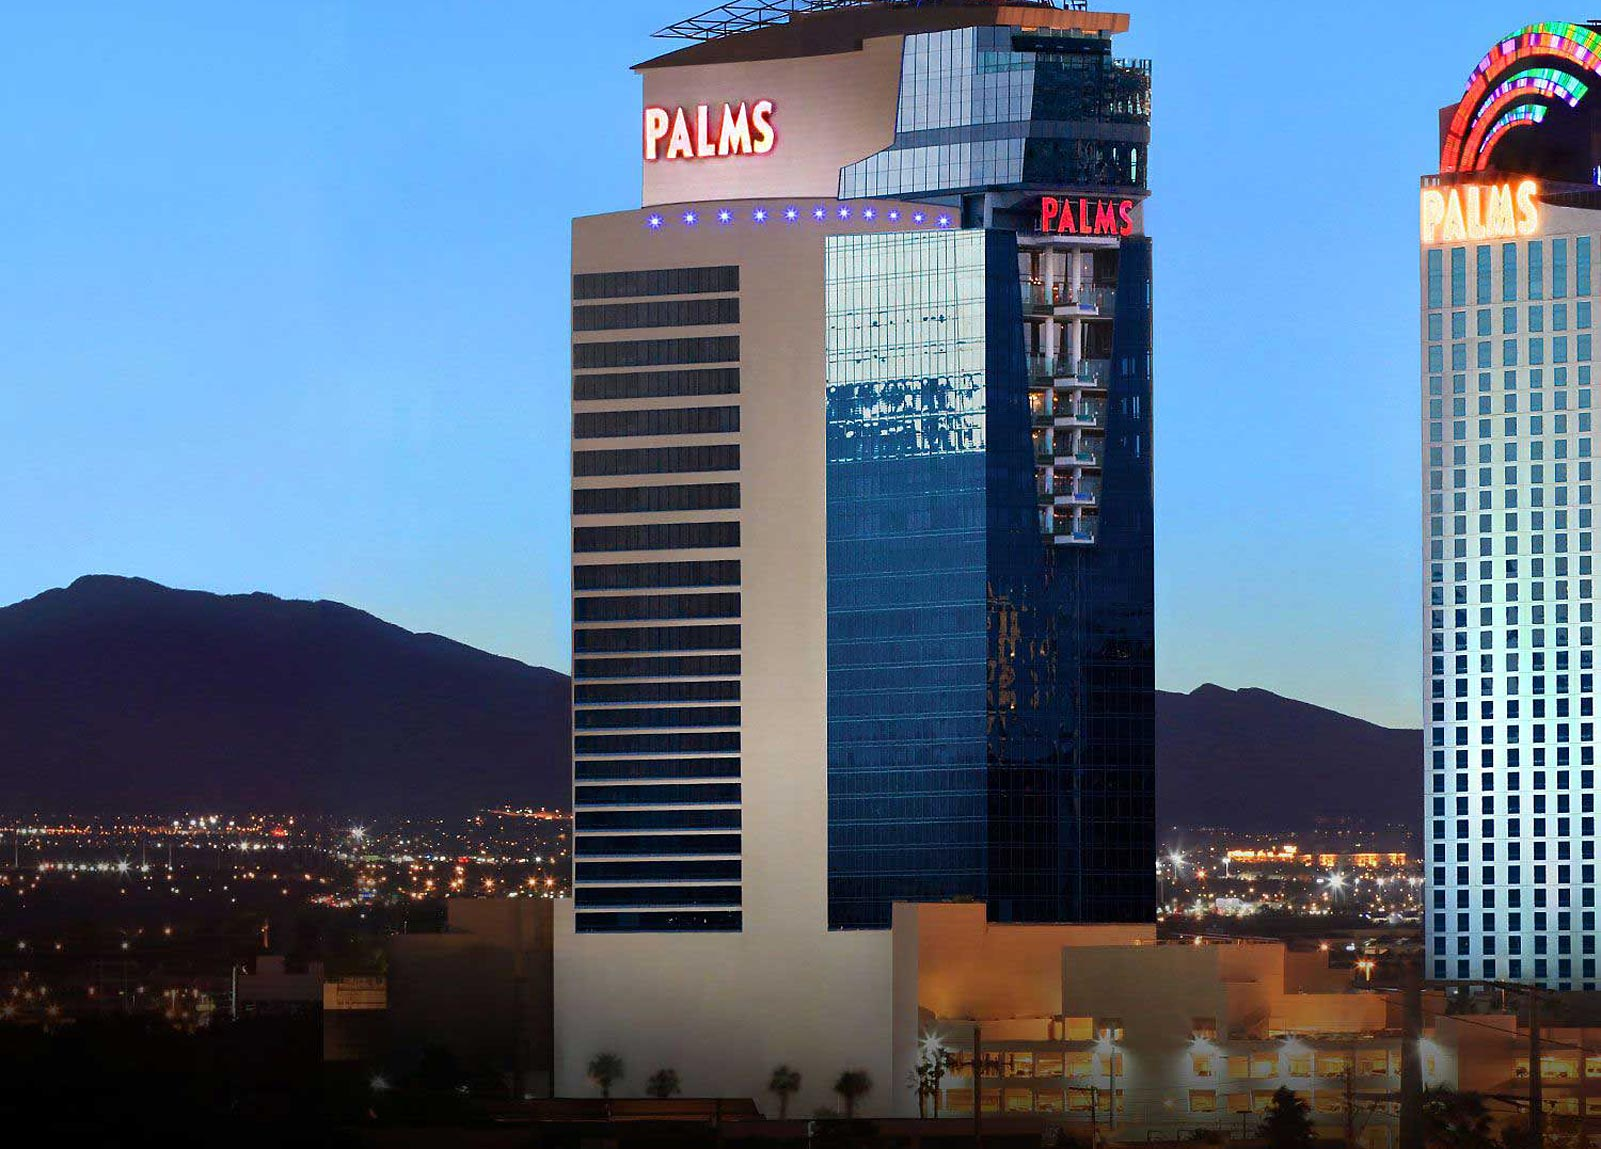 The Palms Hotel Las Vegas